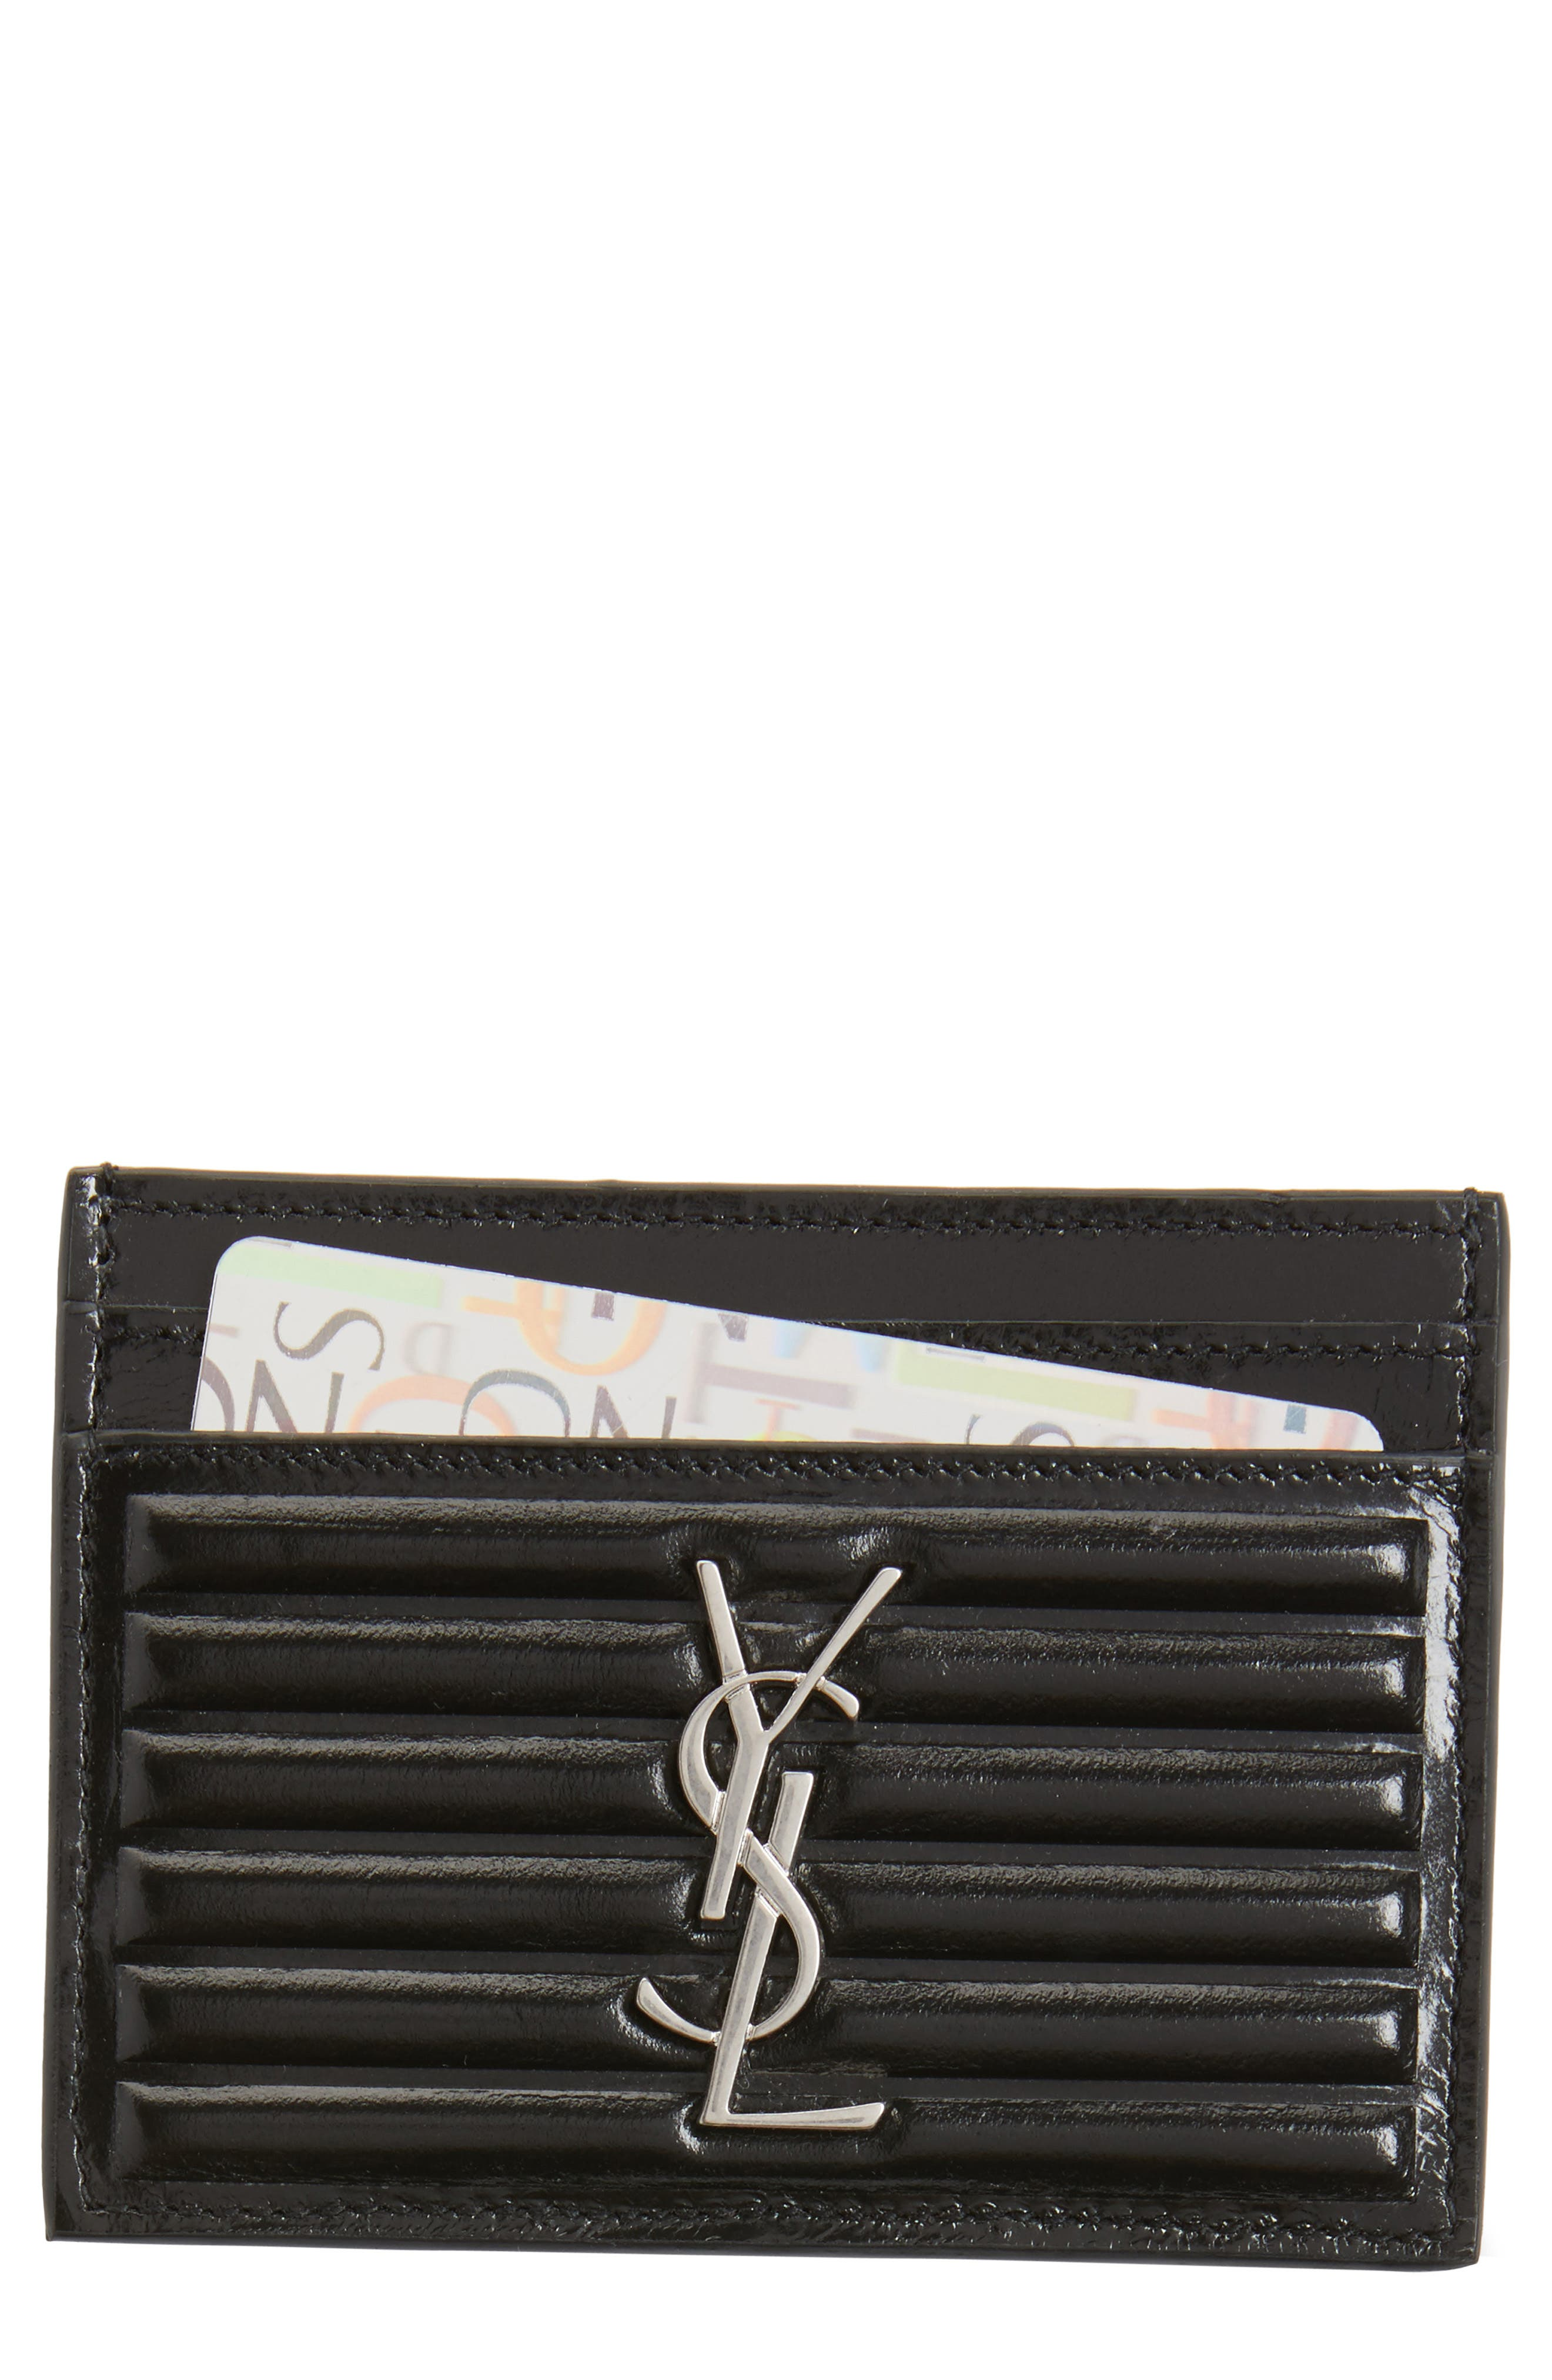 Alternate Image 1 Selected - Saint Laurent Opium Textured Leather Card Case